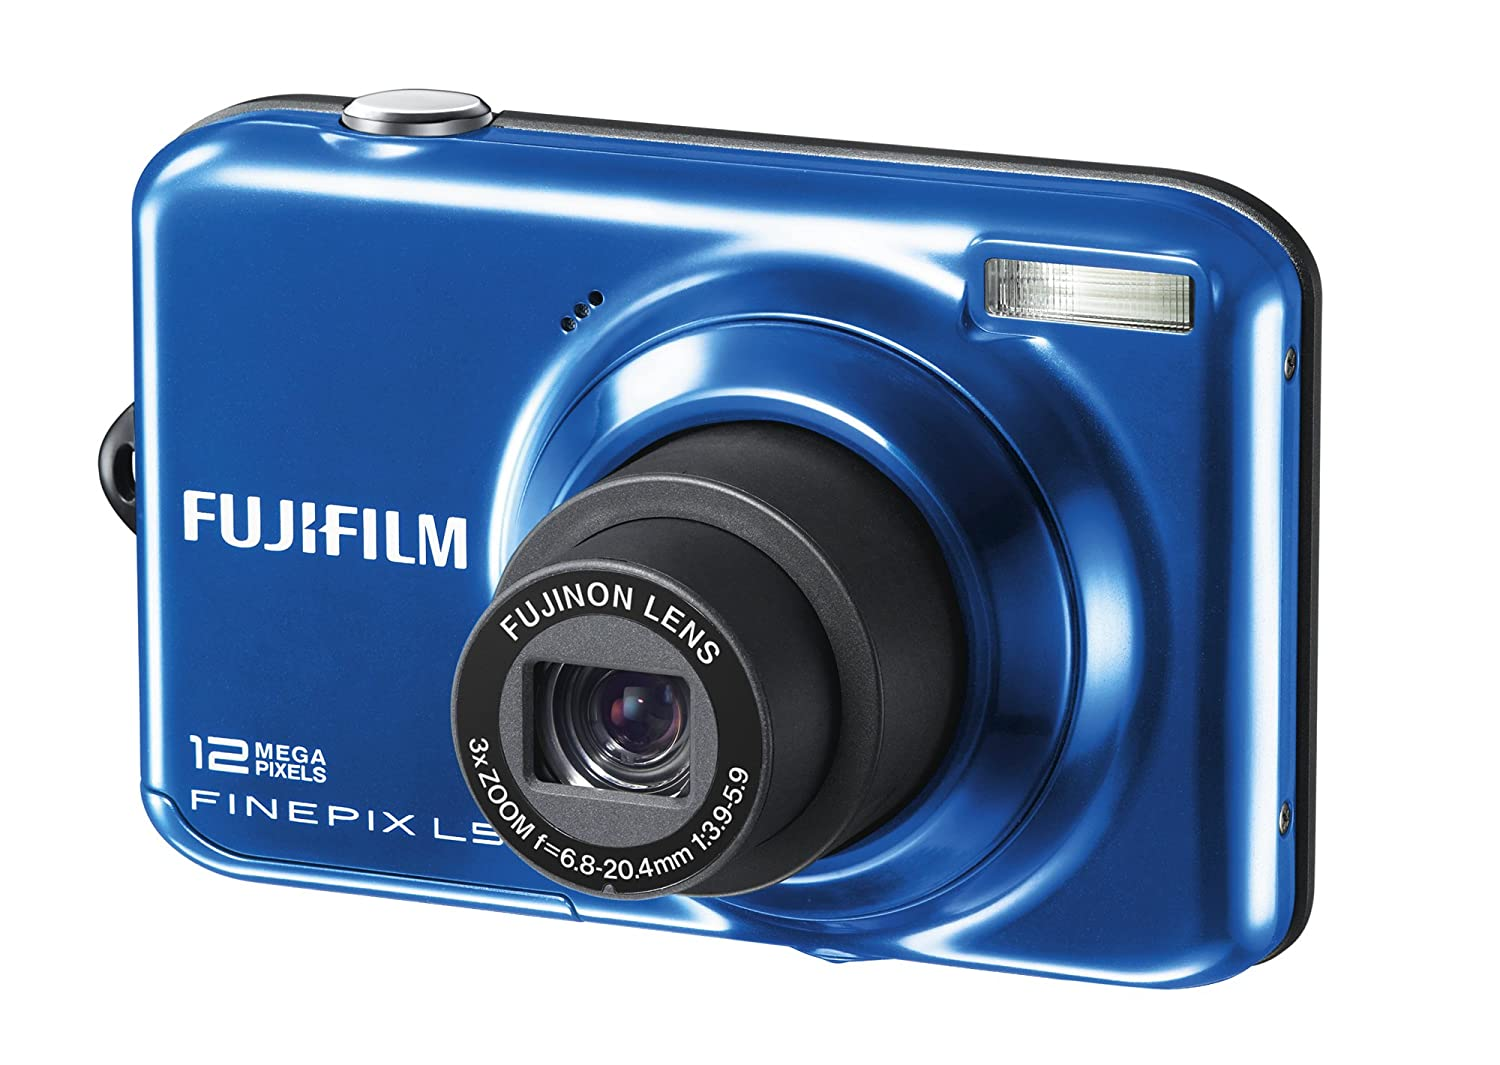 Fujifilm FinePix L55 Digital Camera - Blue 2.4 inch: Amazon.co.uk: Camera &  Photo